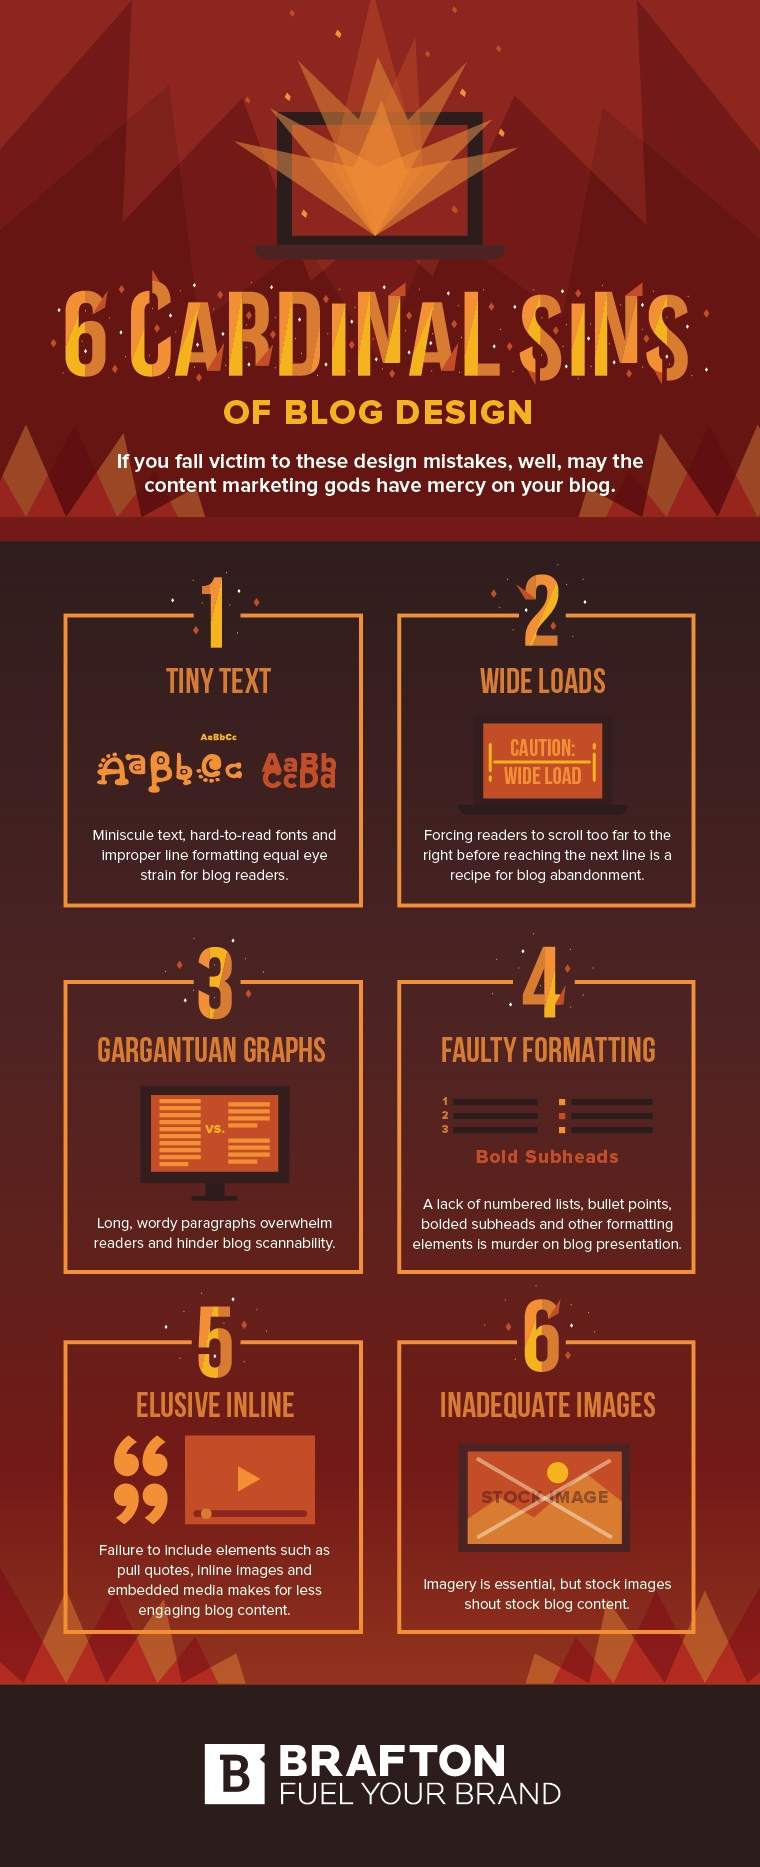 6 Blog Design Mistakes Ruining Your Content Marketing Strategy Infographic Image